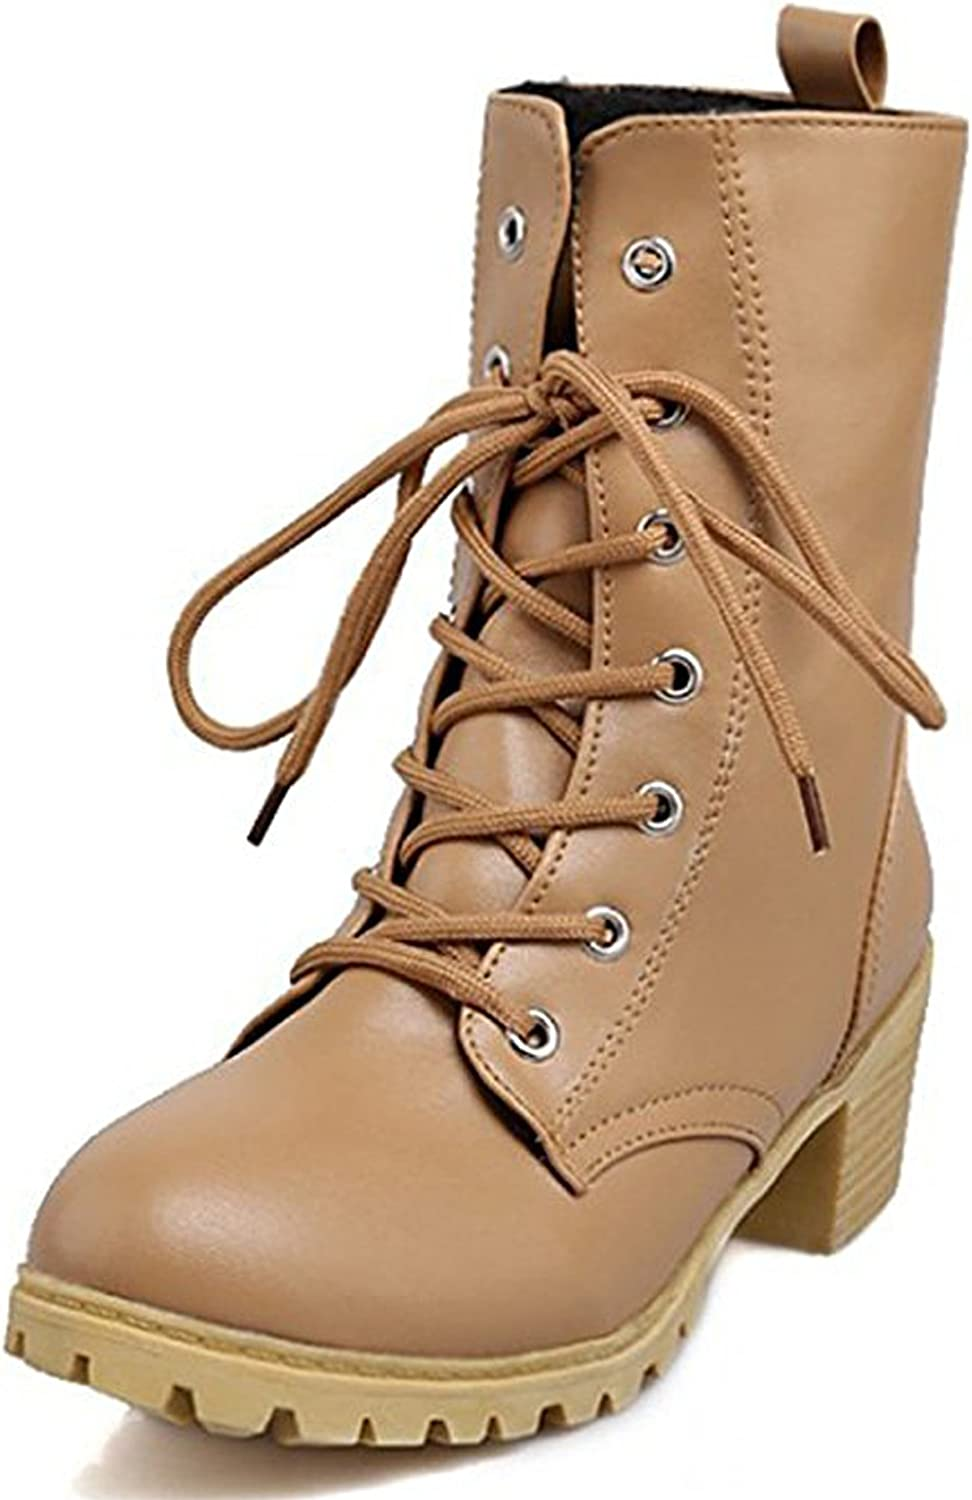 Seoia Womens Dressy Studded Mid Heels Chunky Pointed Toe Short Boots Motor Booties 0619E